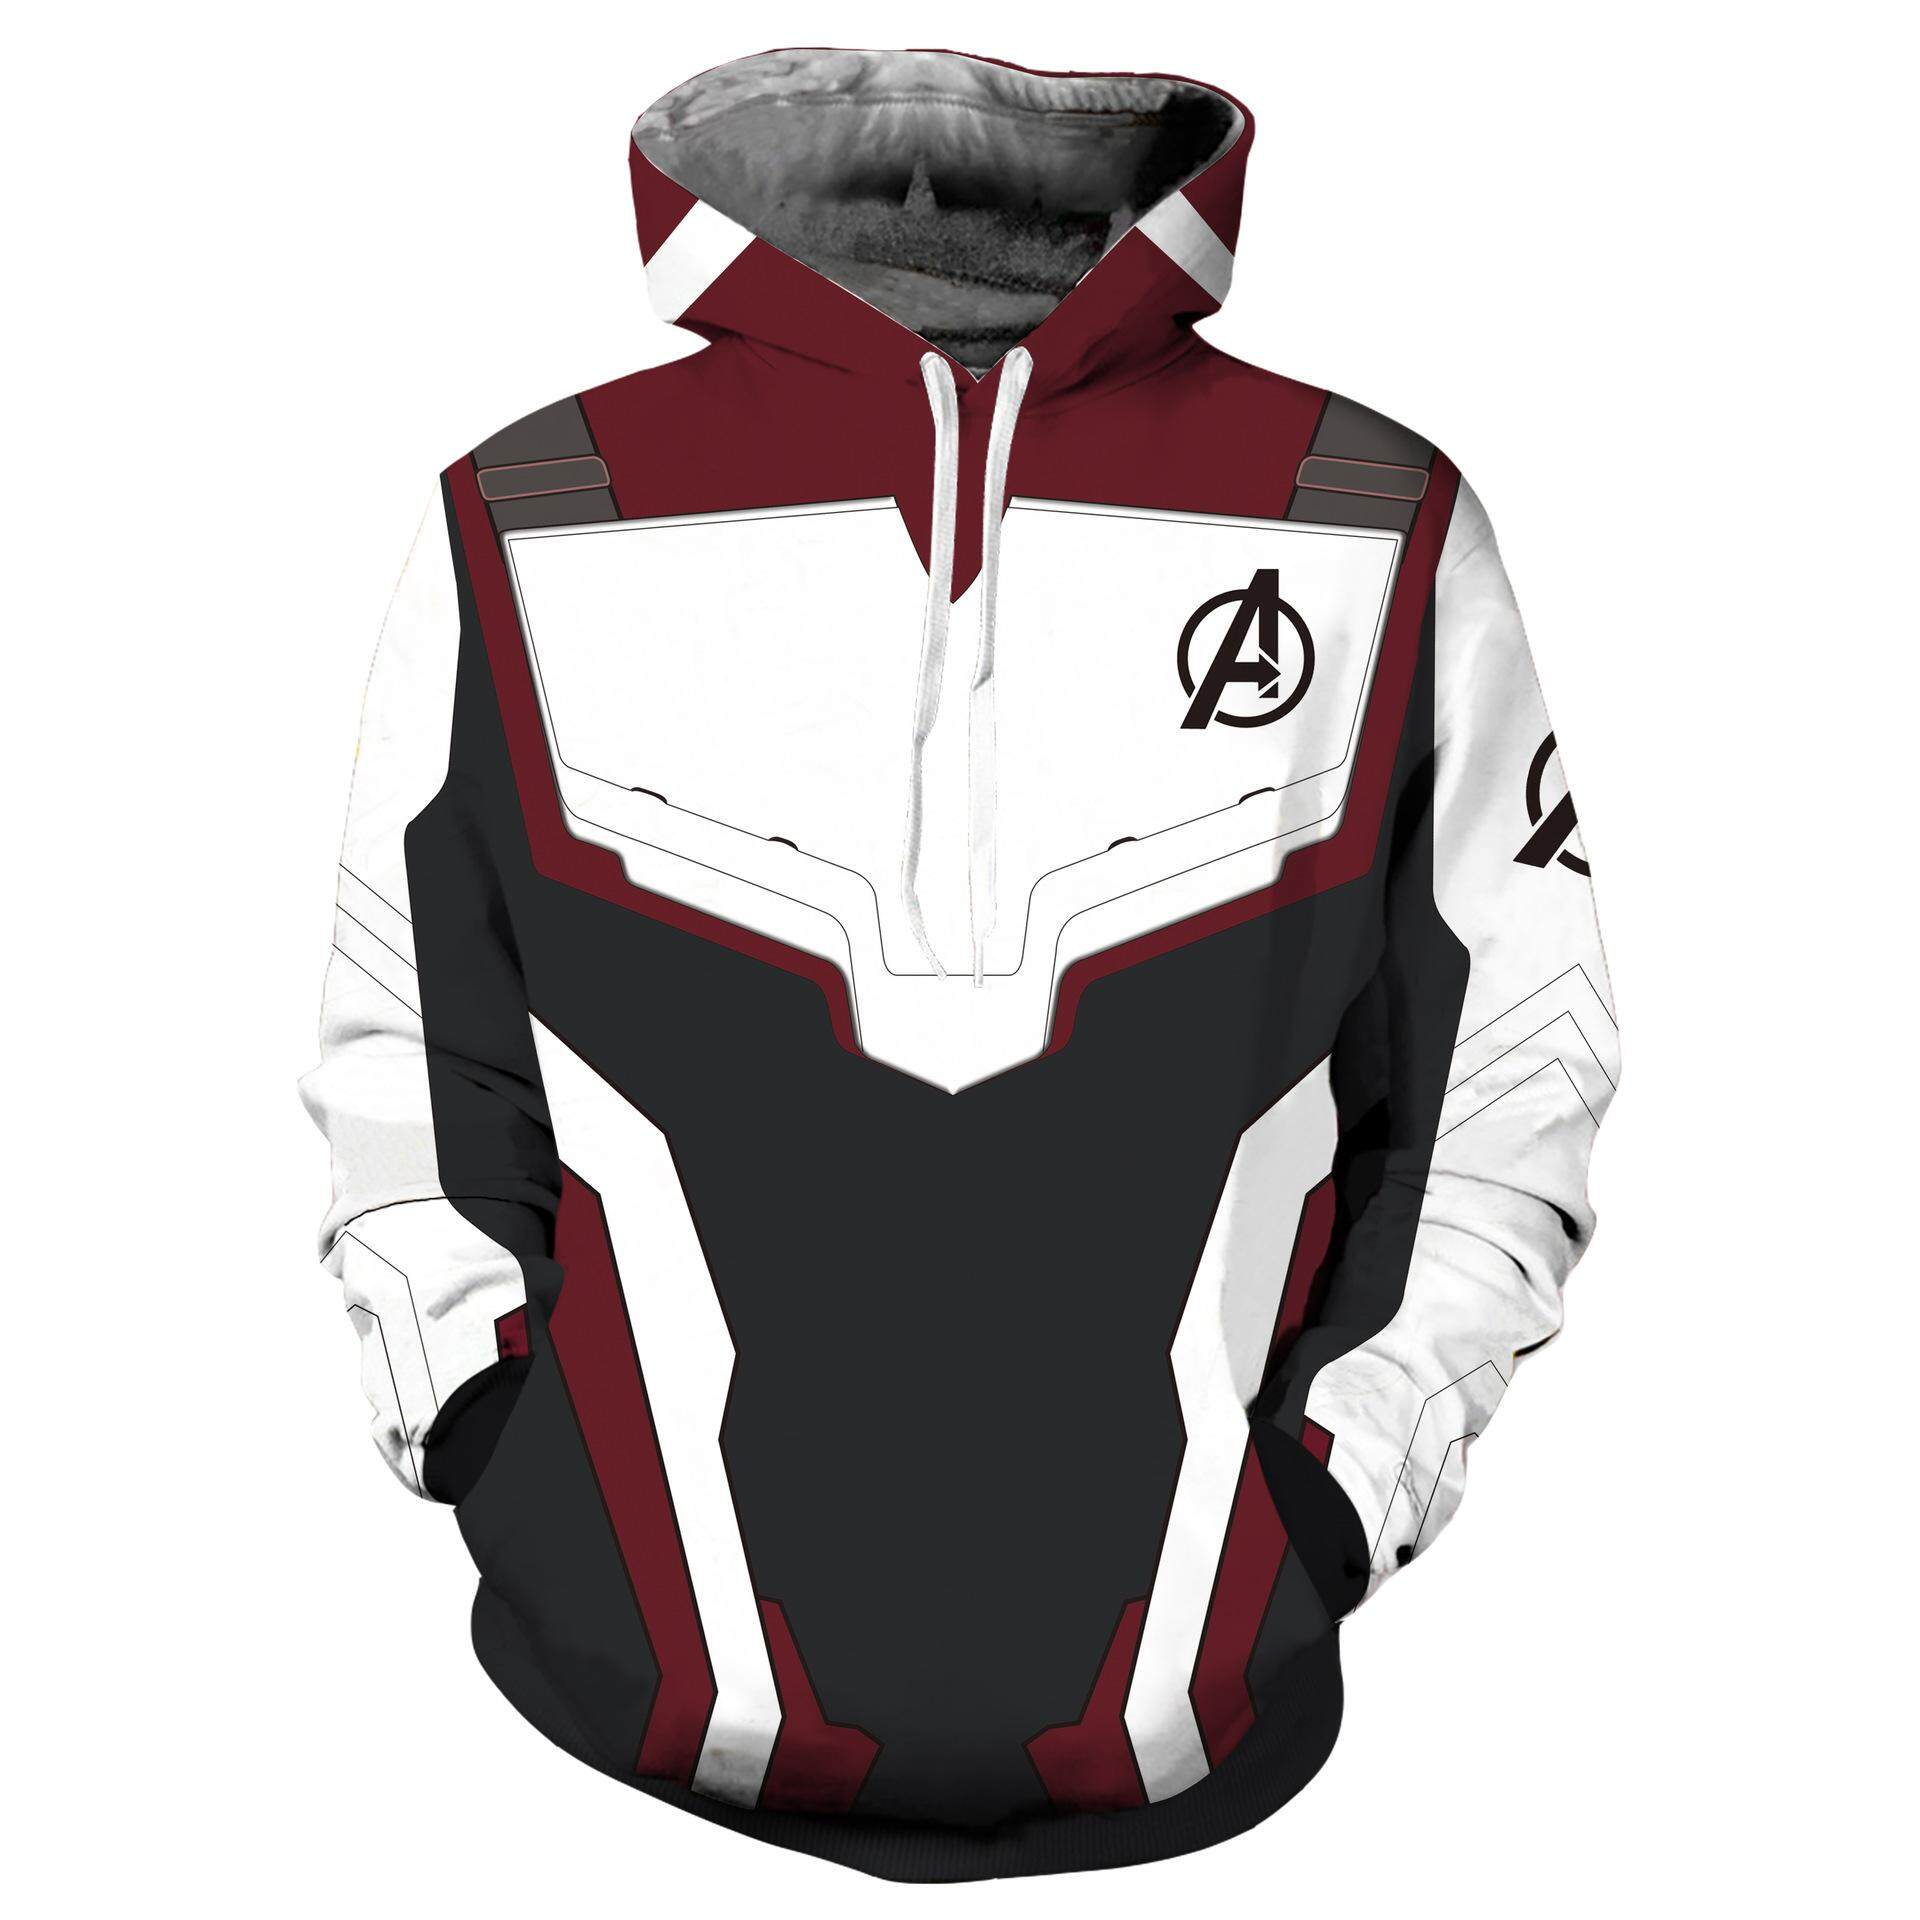 fb98c917 The Avengers 4 Endgame Quantum Realm Sweatshirt Jacket Advanced Tech  Superhero Iron Man Hoodies Suit